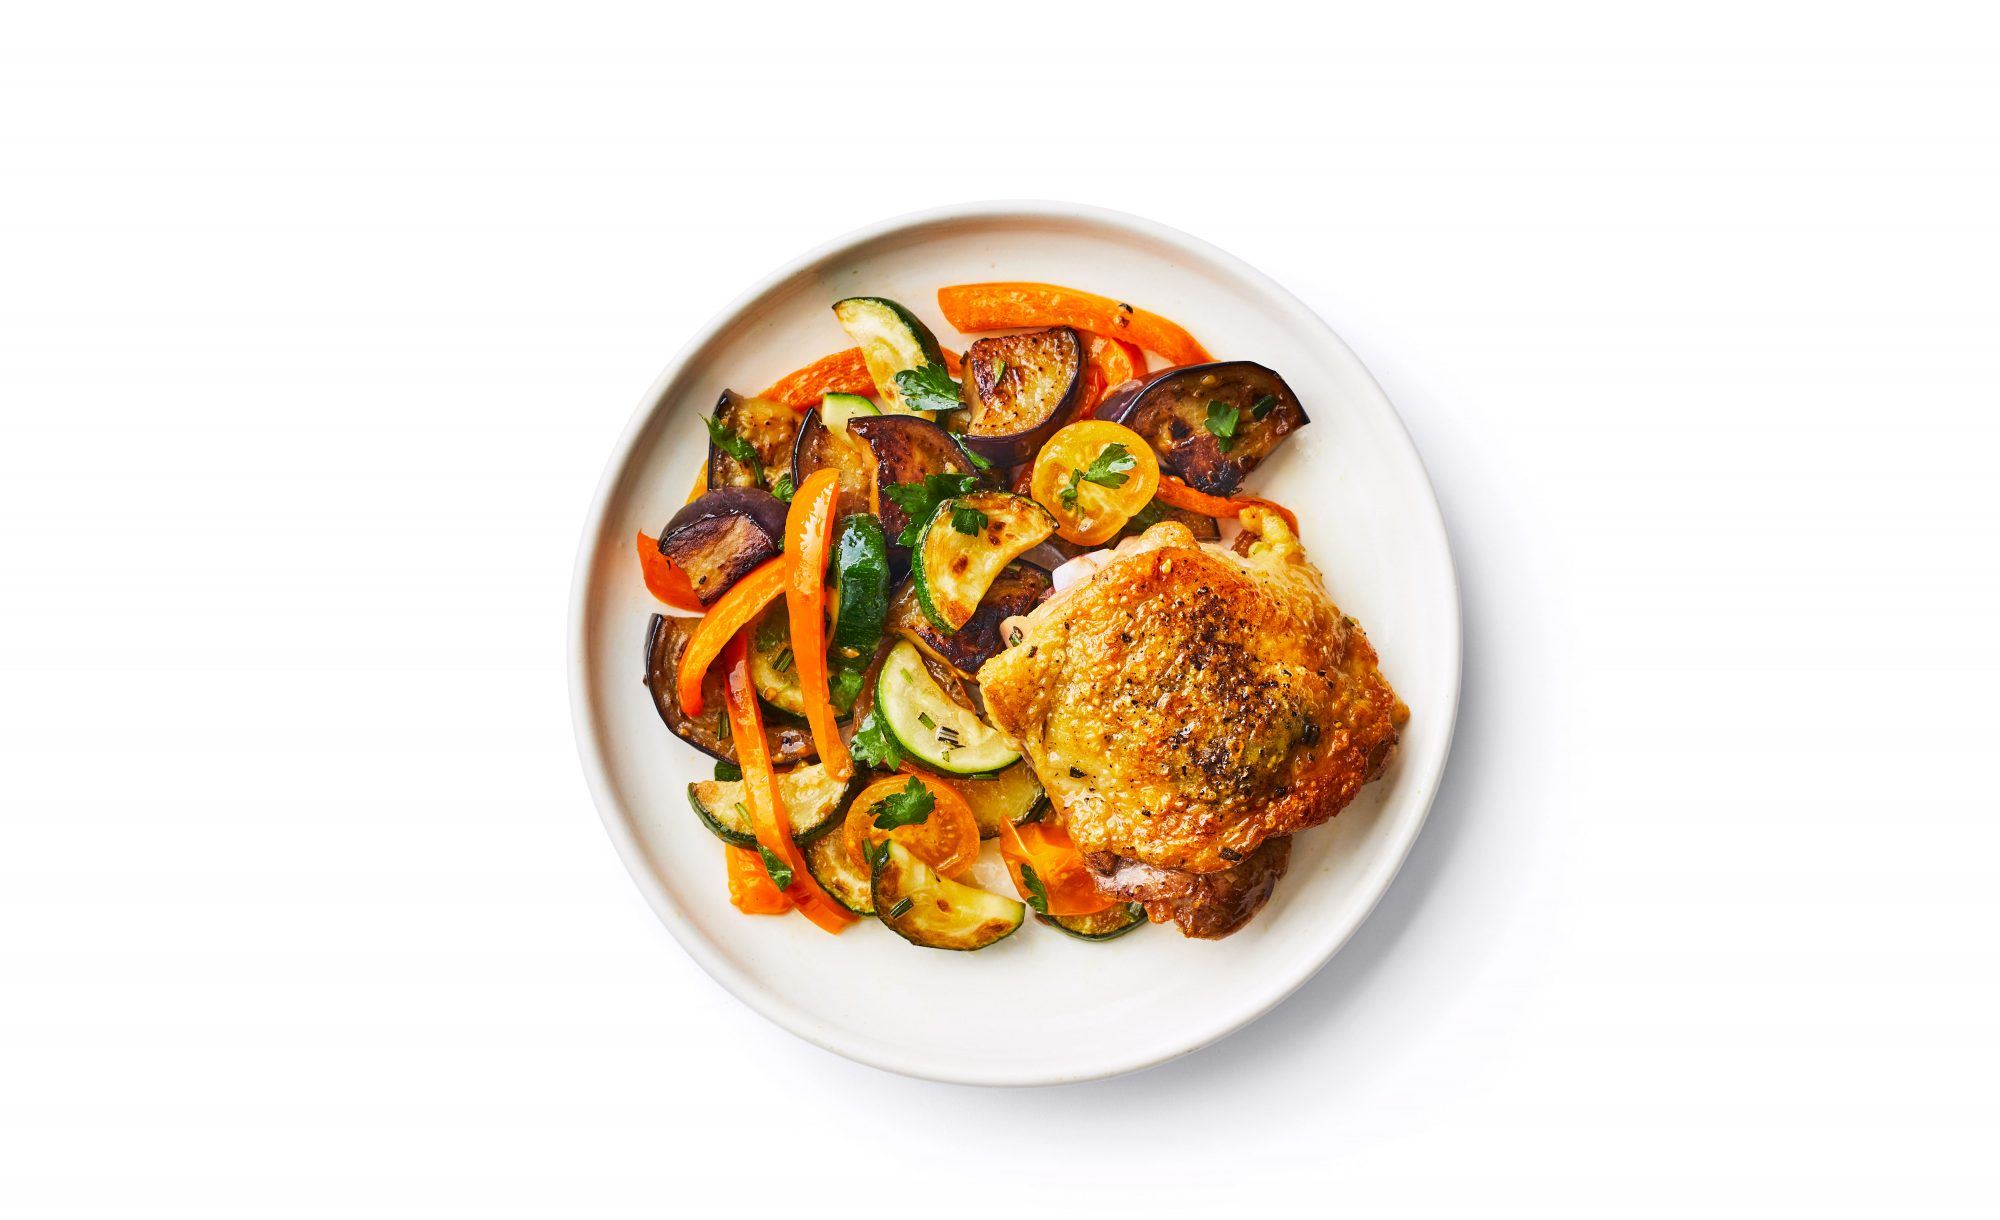 Rosemary Chicken Thighs With Summer Vegetables